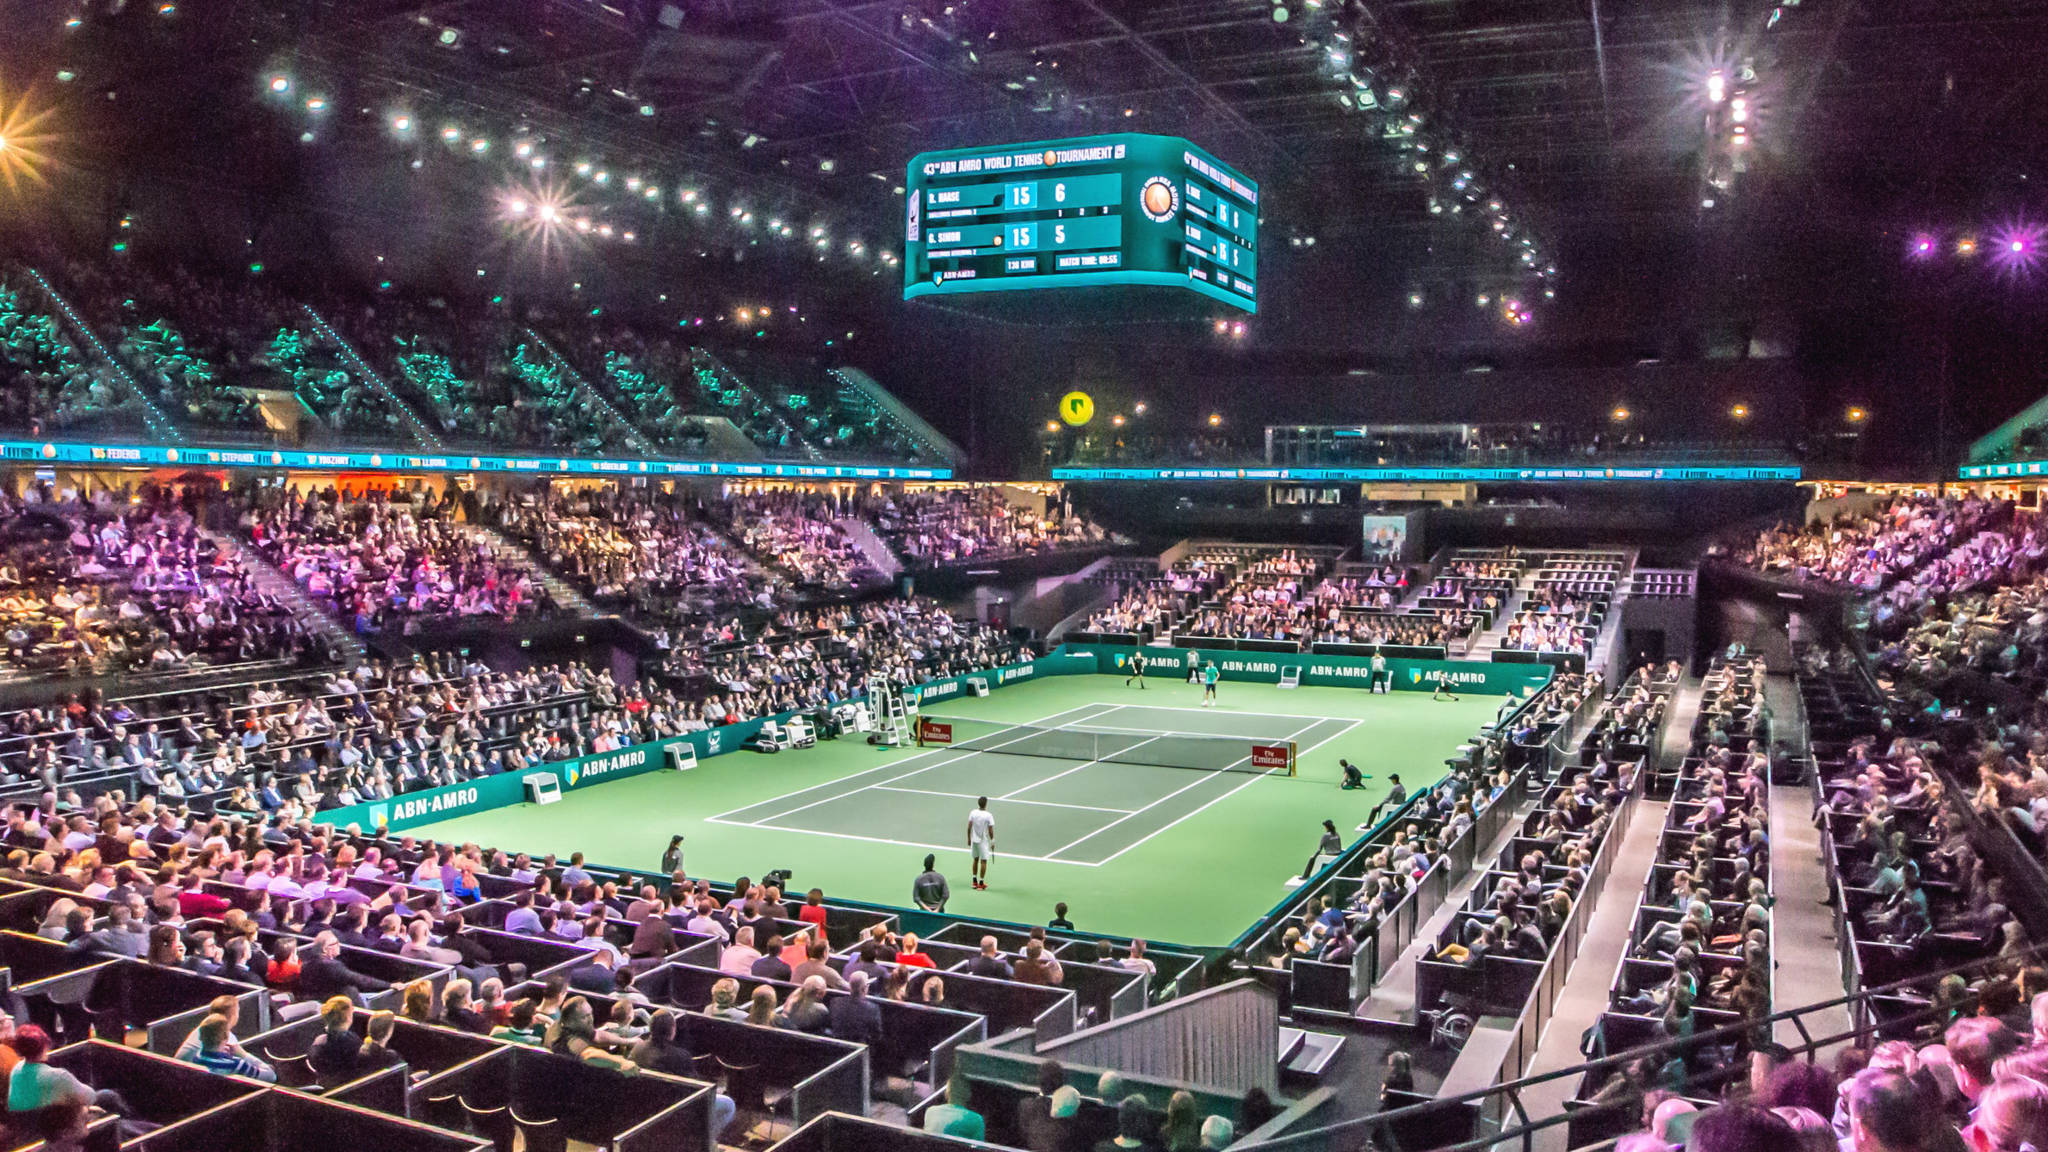 Foto: ABN AMRO Tennis Tournament